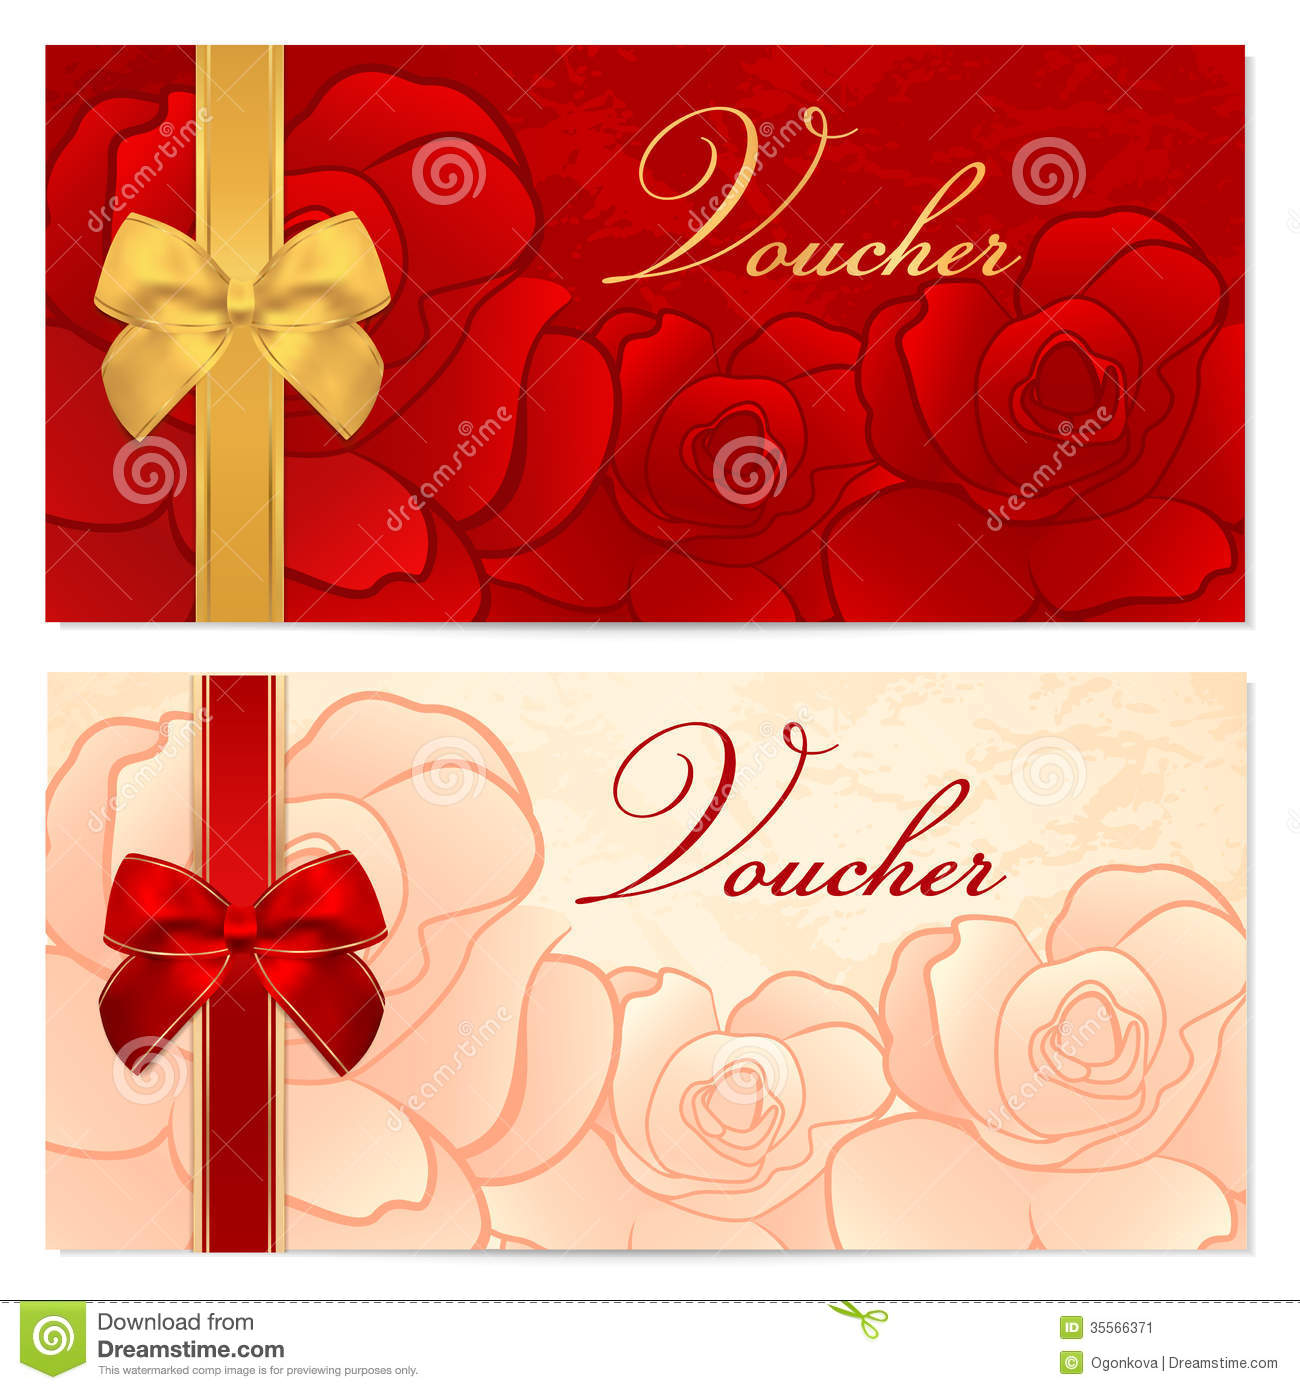 Gift certificate voucher coupon template bow f stock vector gift certificate voucher coupon template bow f yelopaper Gallery